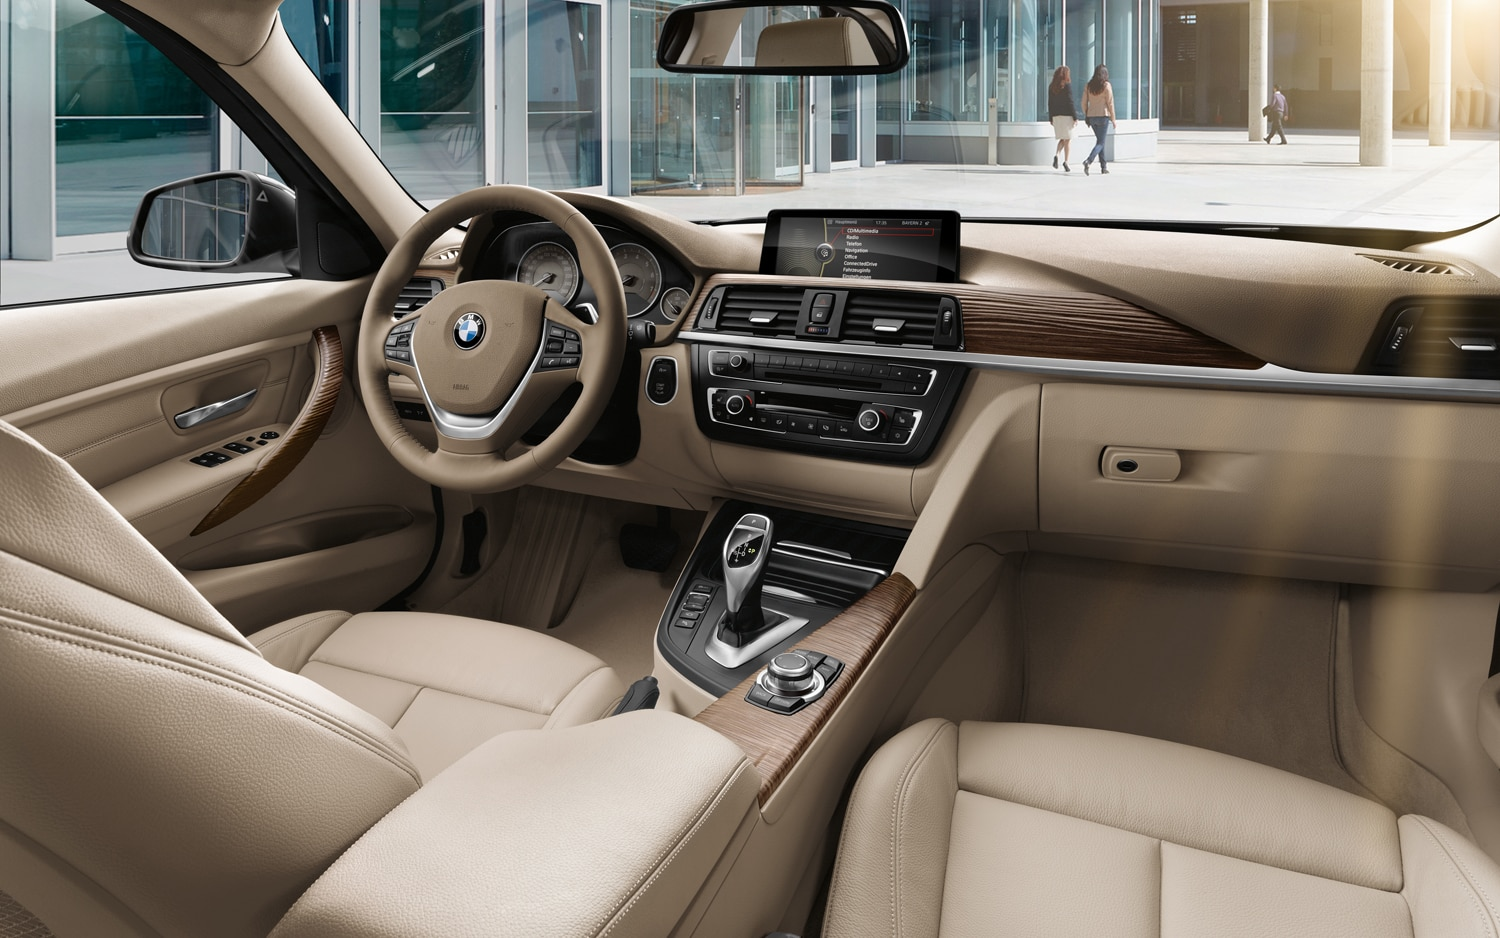 2012 bmw 3 series first look automobile magazine 00000 sciox Choice Image